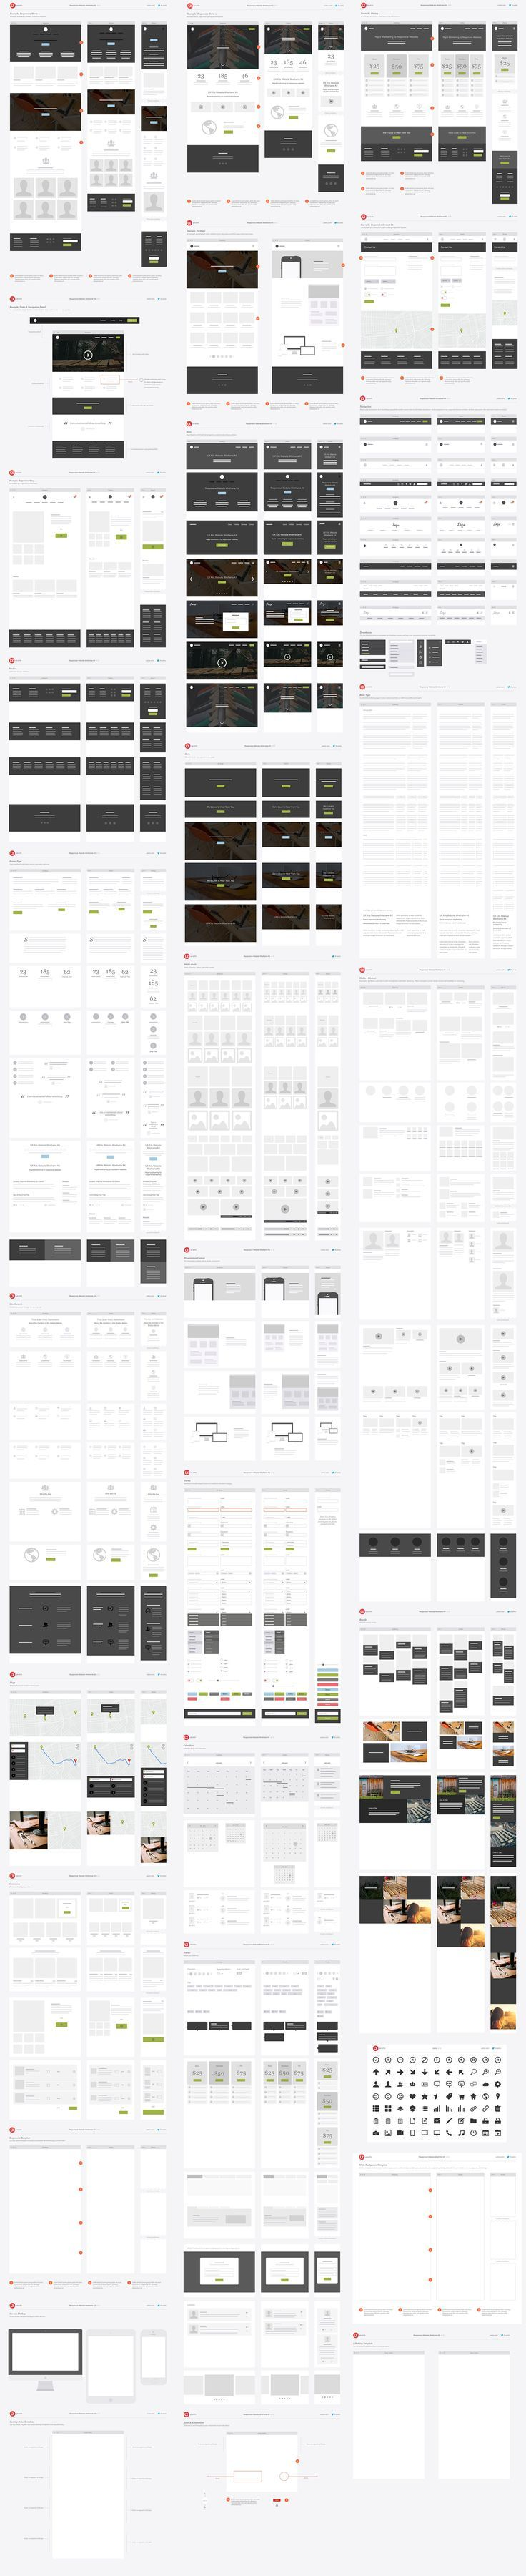 1131 best Wireframe images on Pinterest | Concept art, Conceptual ...